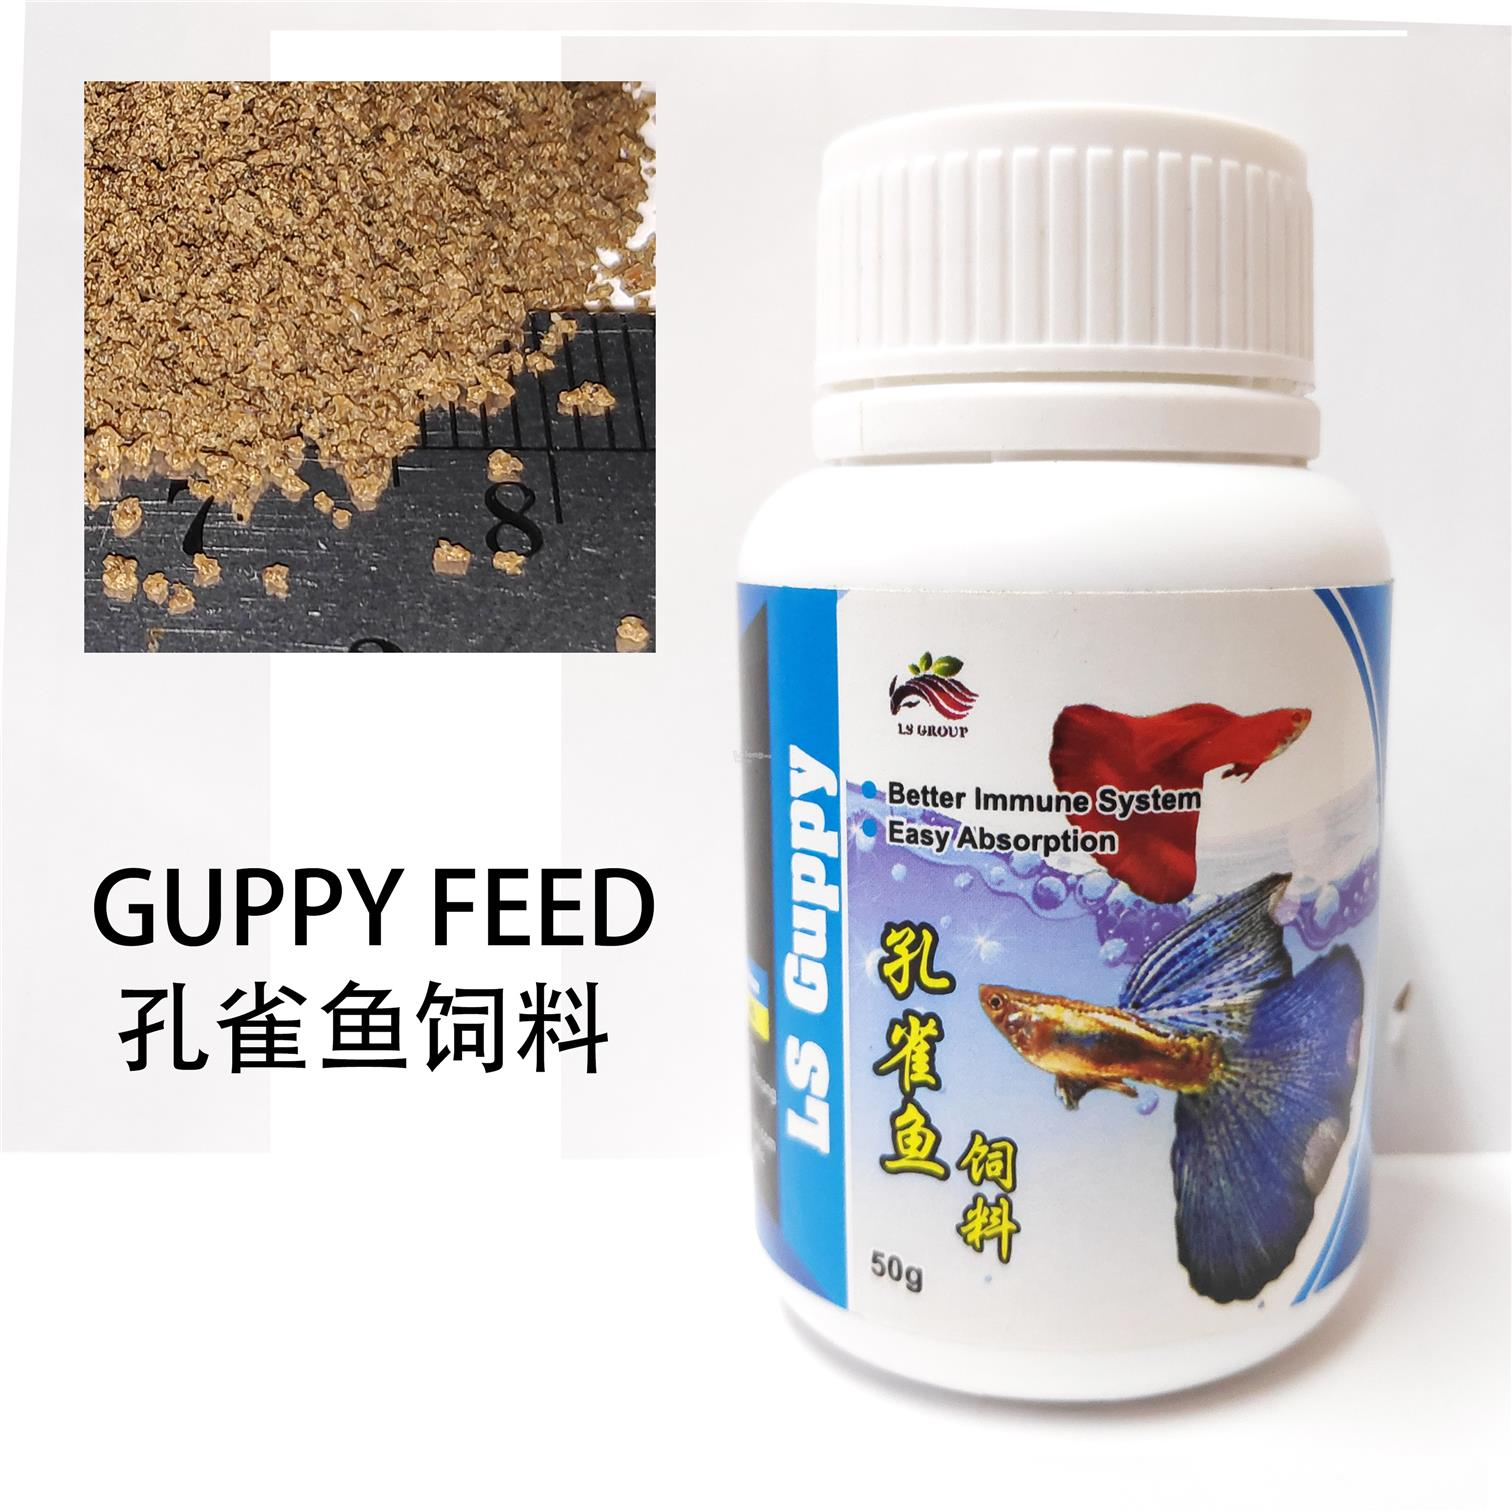 Guppy feed 50g